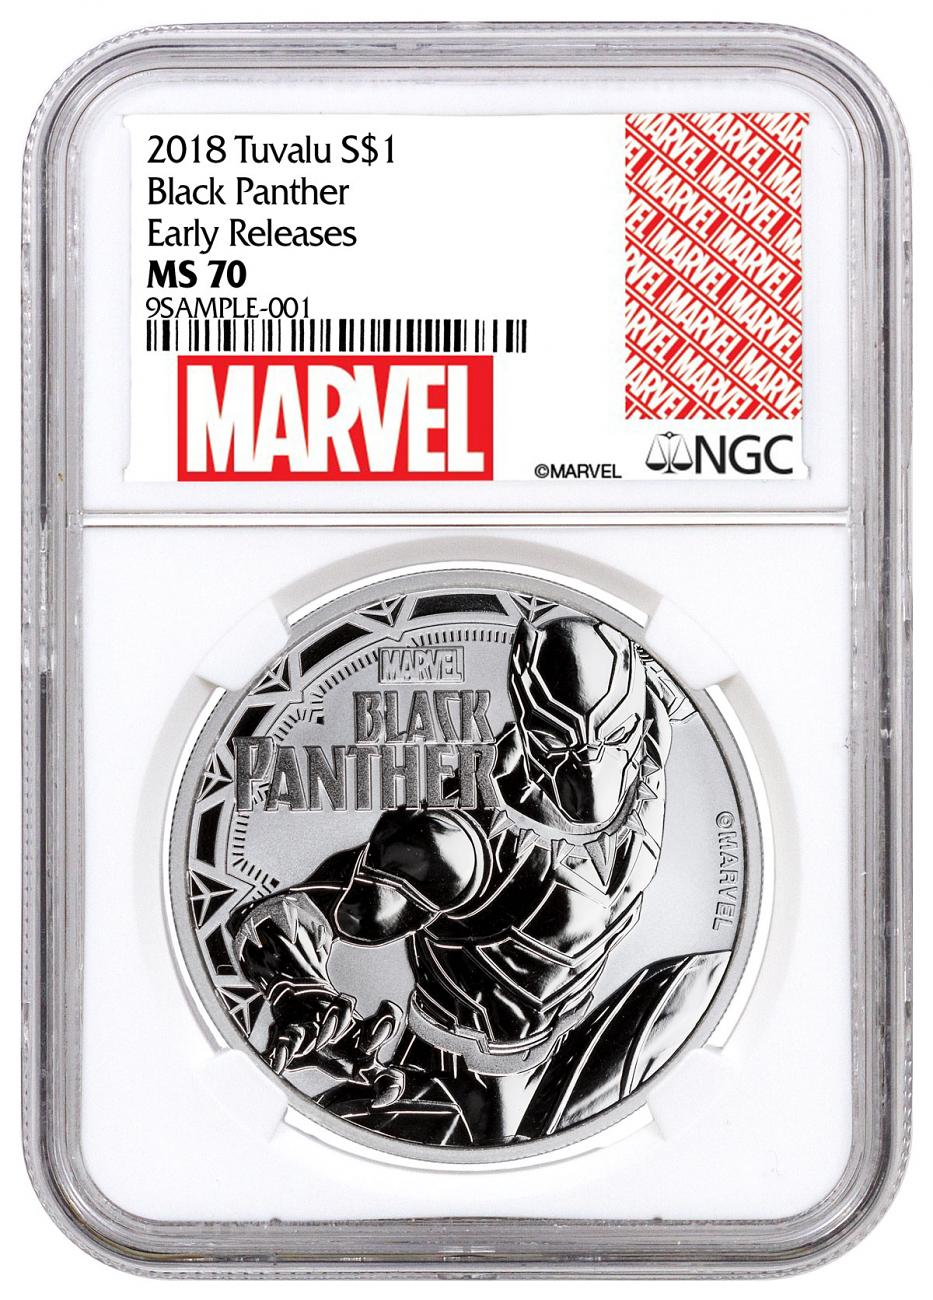 2018 Tuvalu Black Panther 1 oz Silver Marvel Series $1 Coin NGC MS70 ER Exclusive Marvel Label